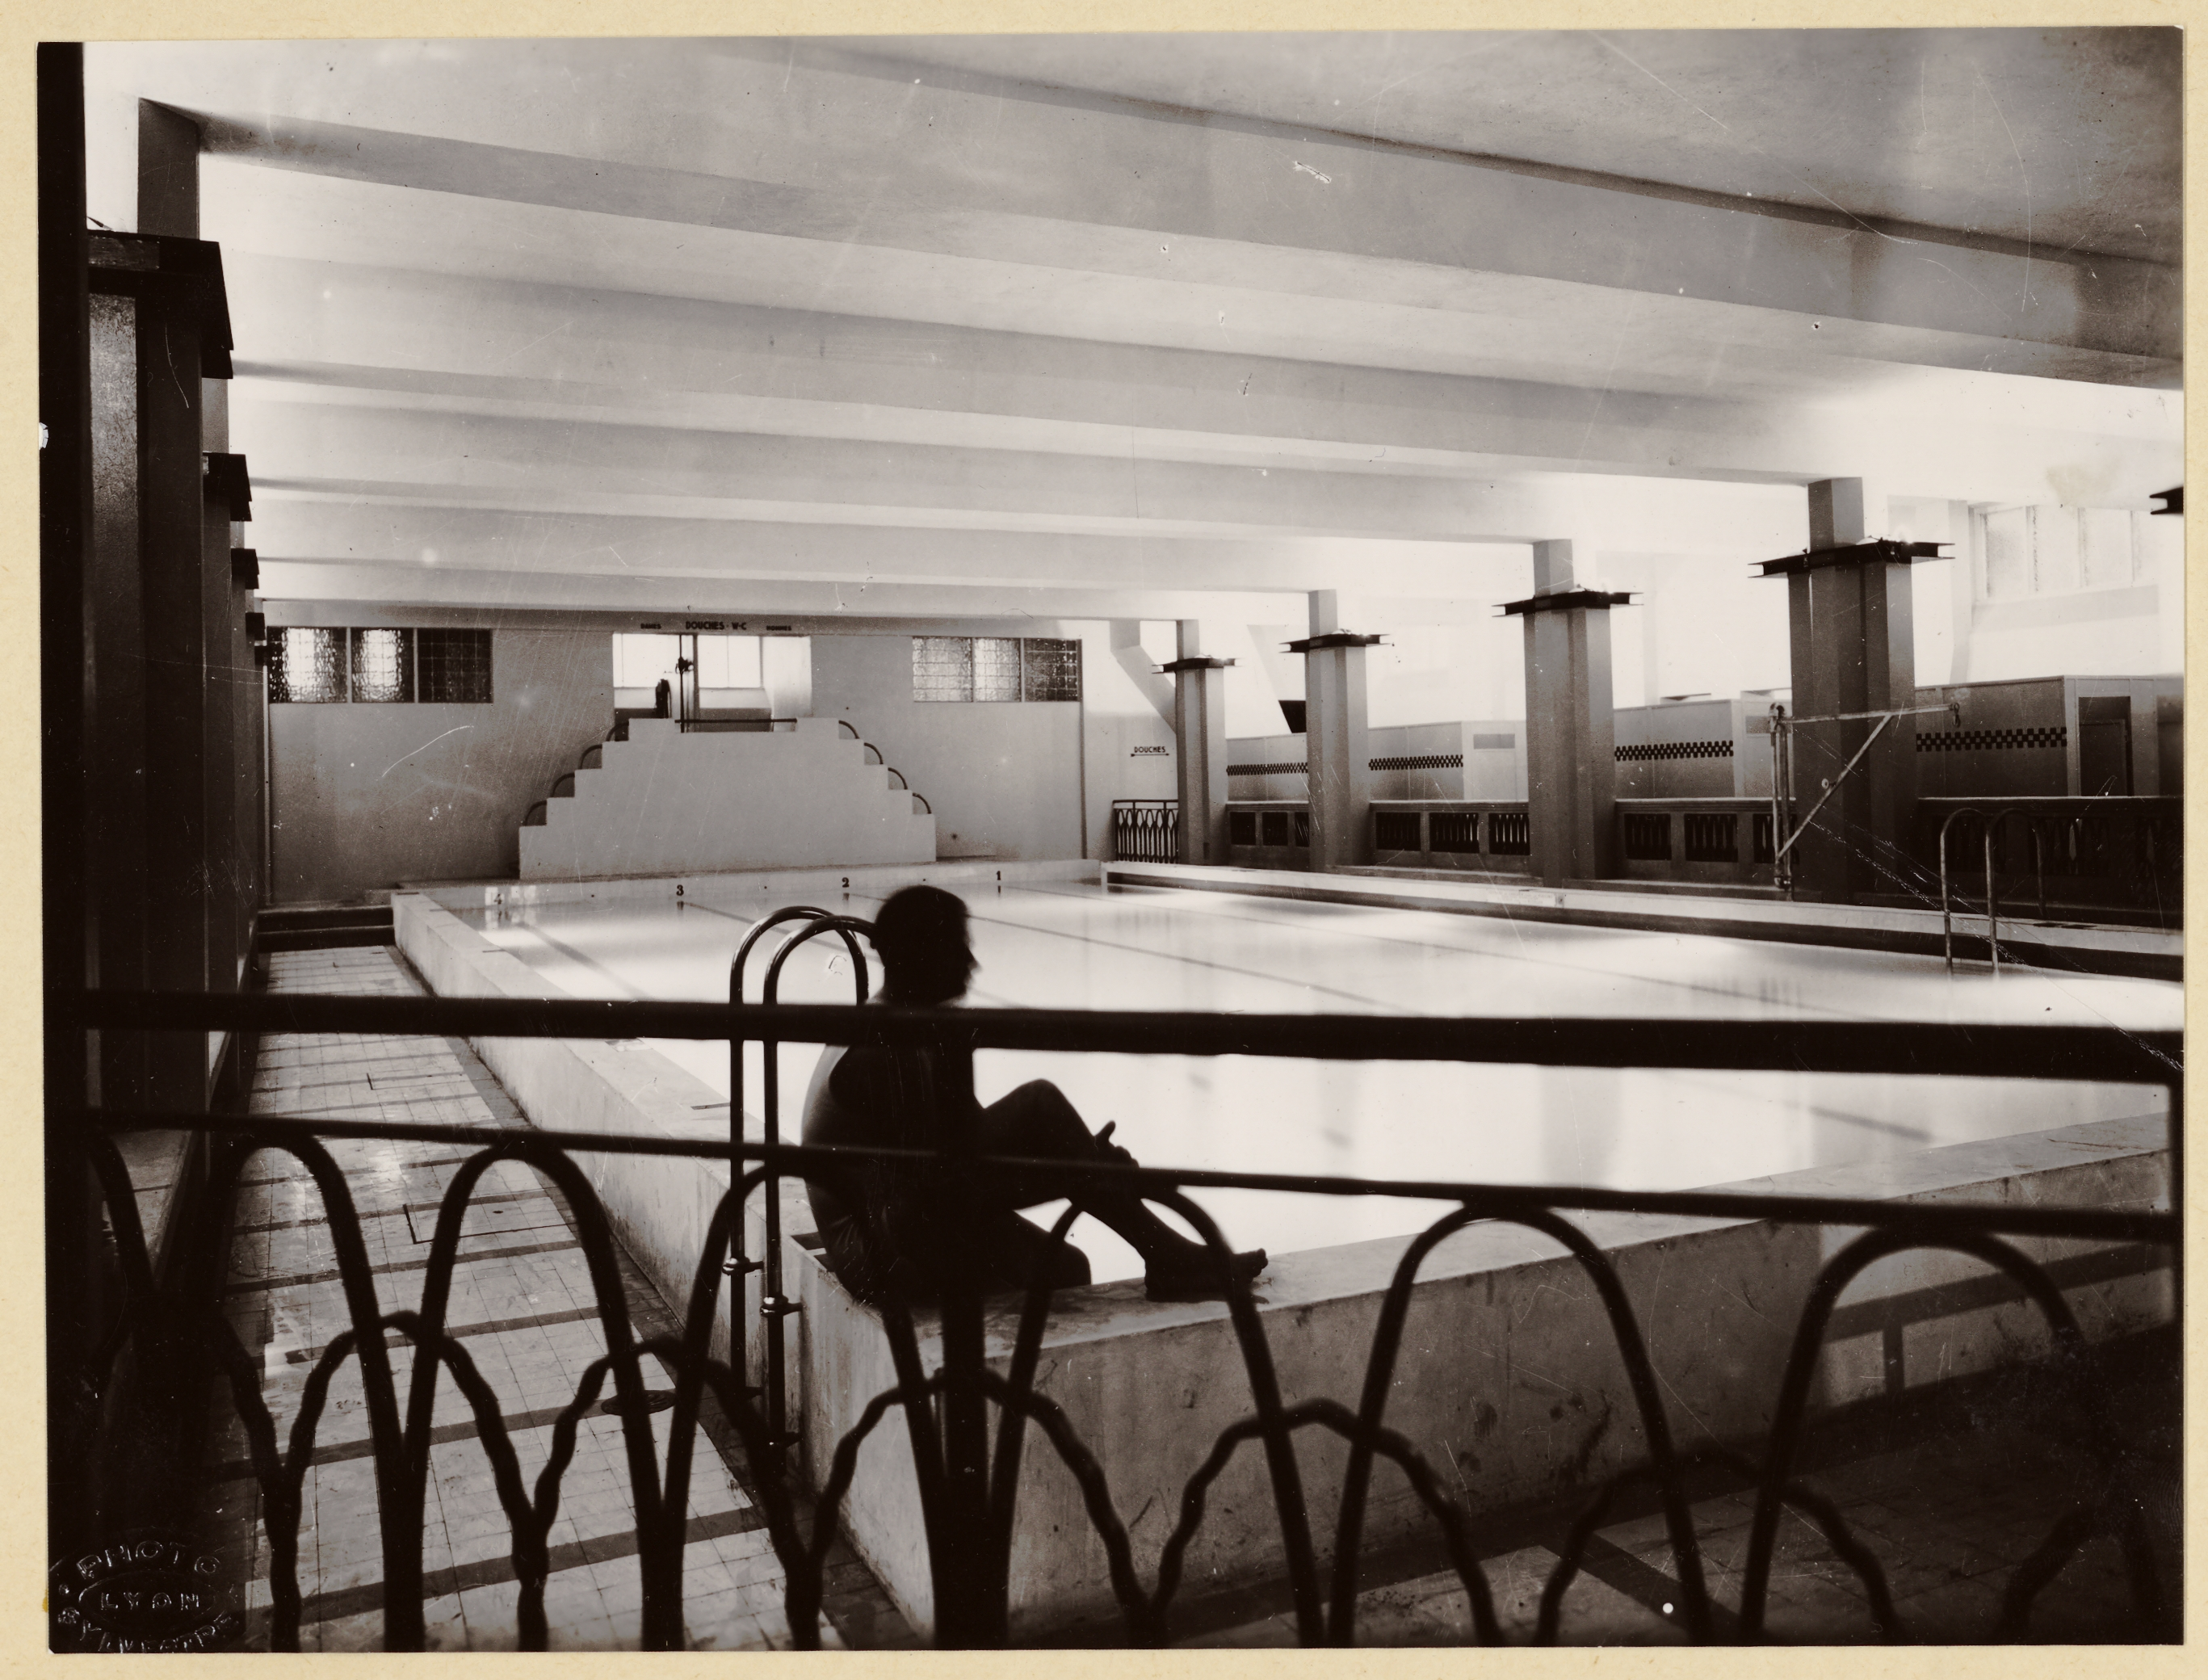 photographes en rh ne alpes gratte ciel de villeurbanne piscine vers 1935. Black Bedroom Furniture Sets. Home Design Ideas